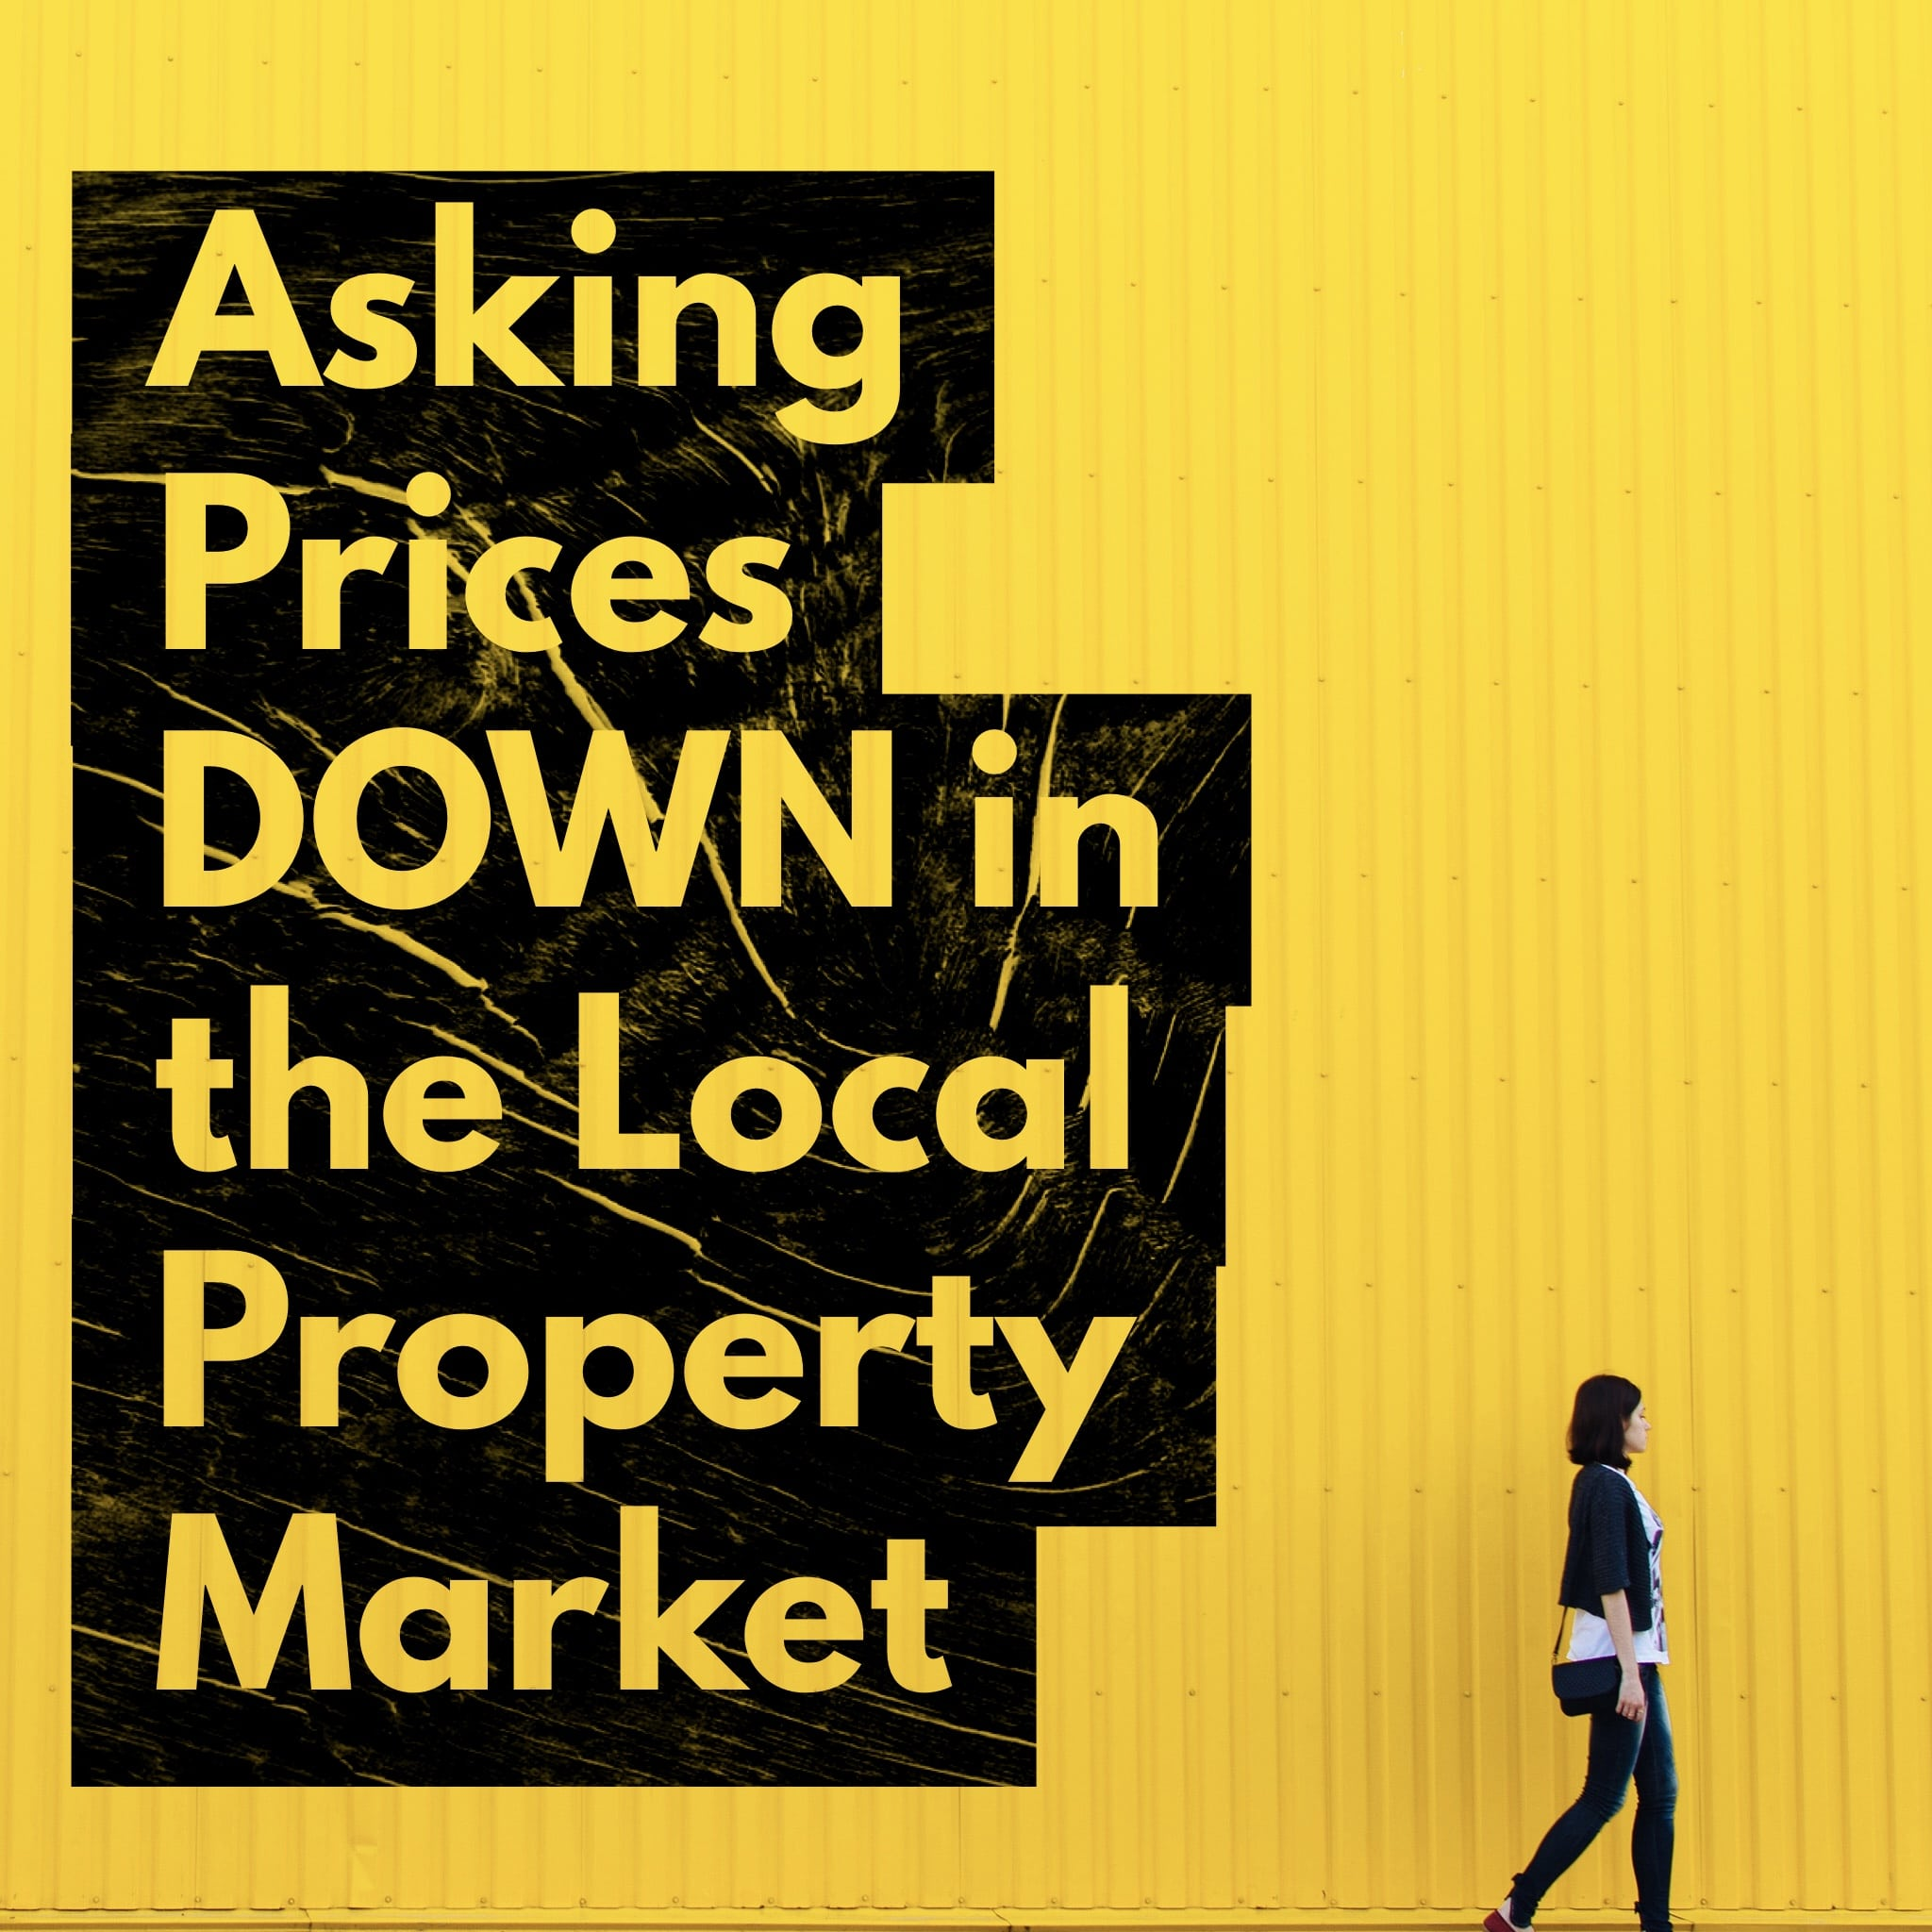 Canterbury Property Market – Asking Prices Down 9.2% in the Last 12 Months